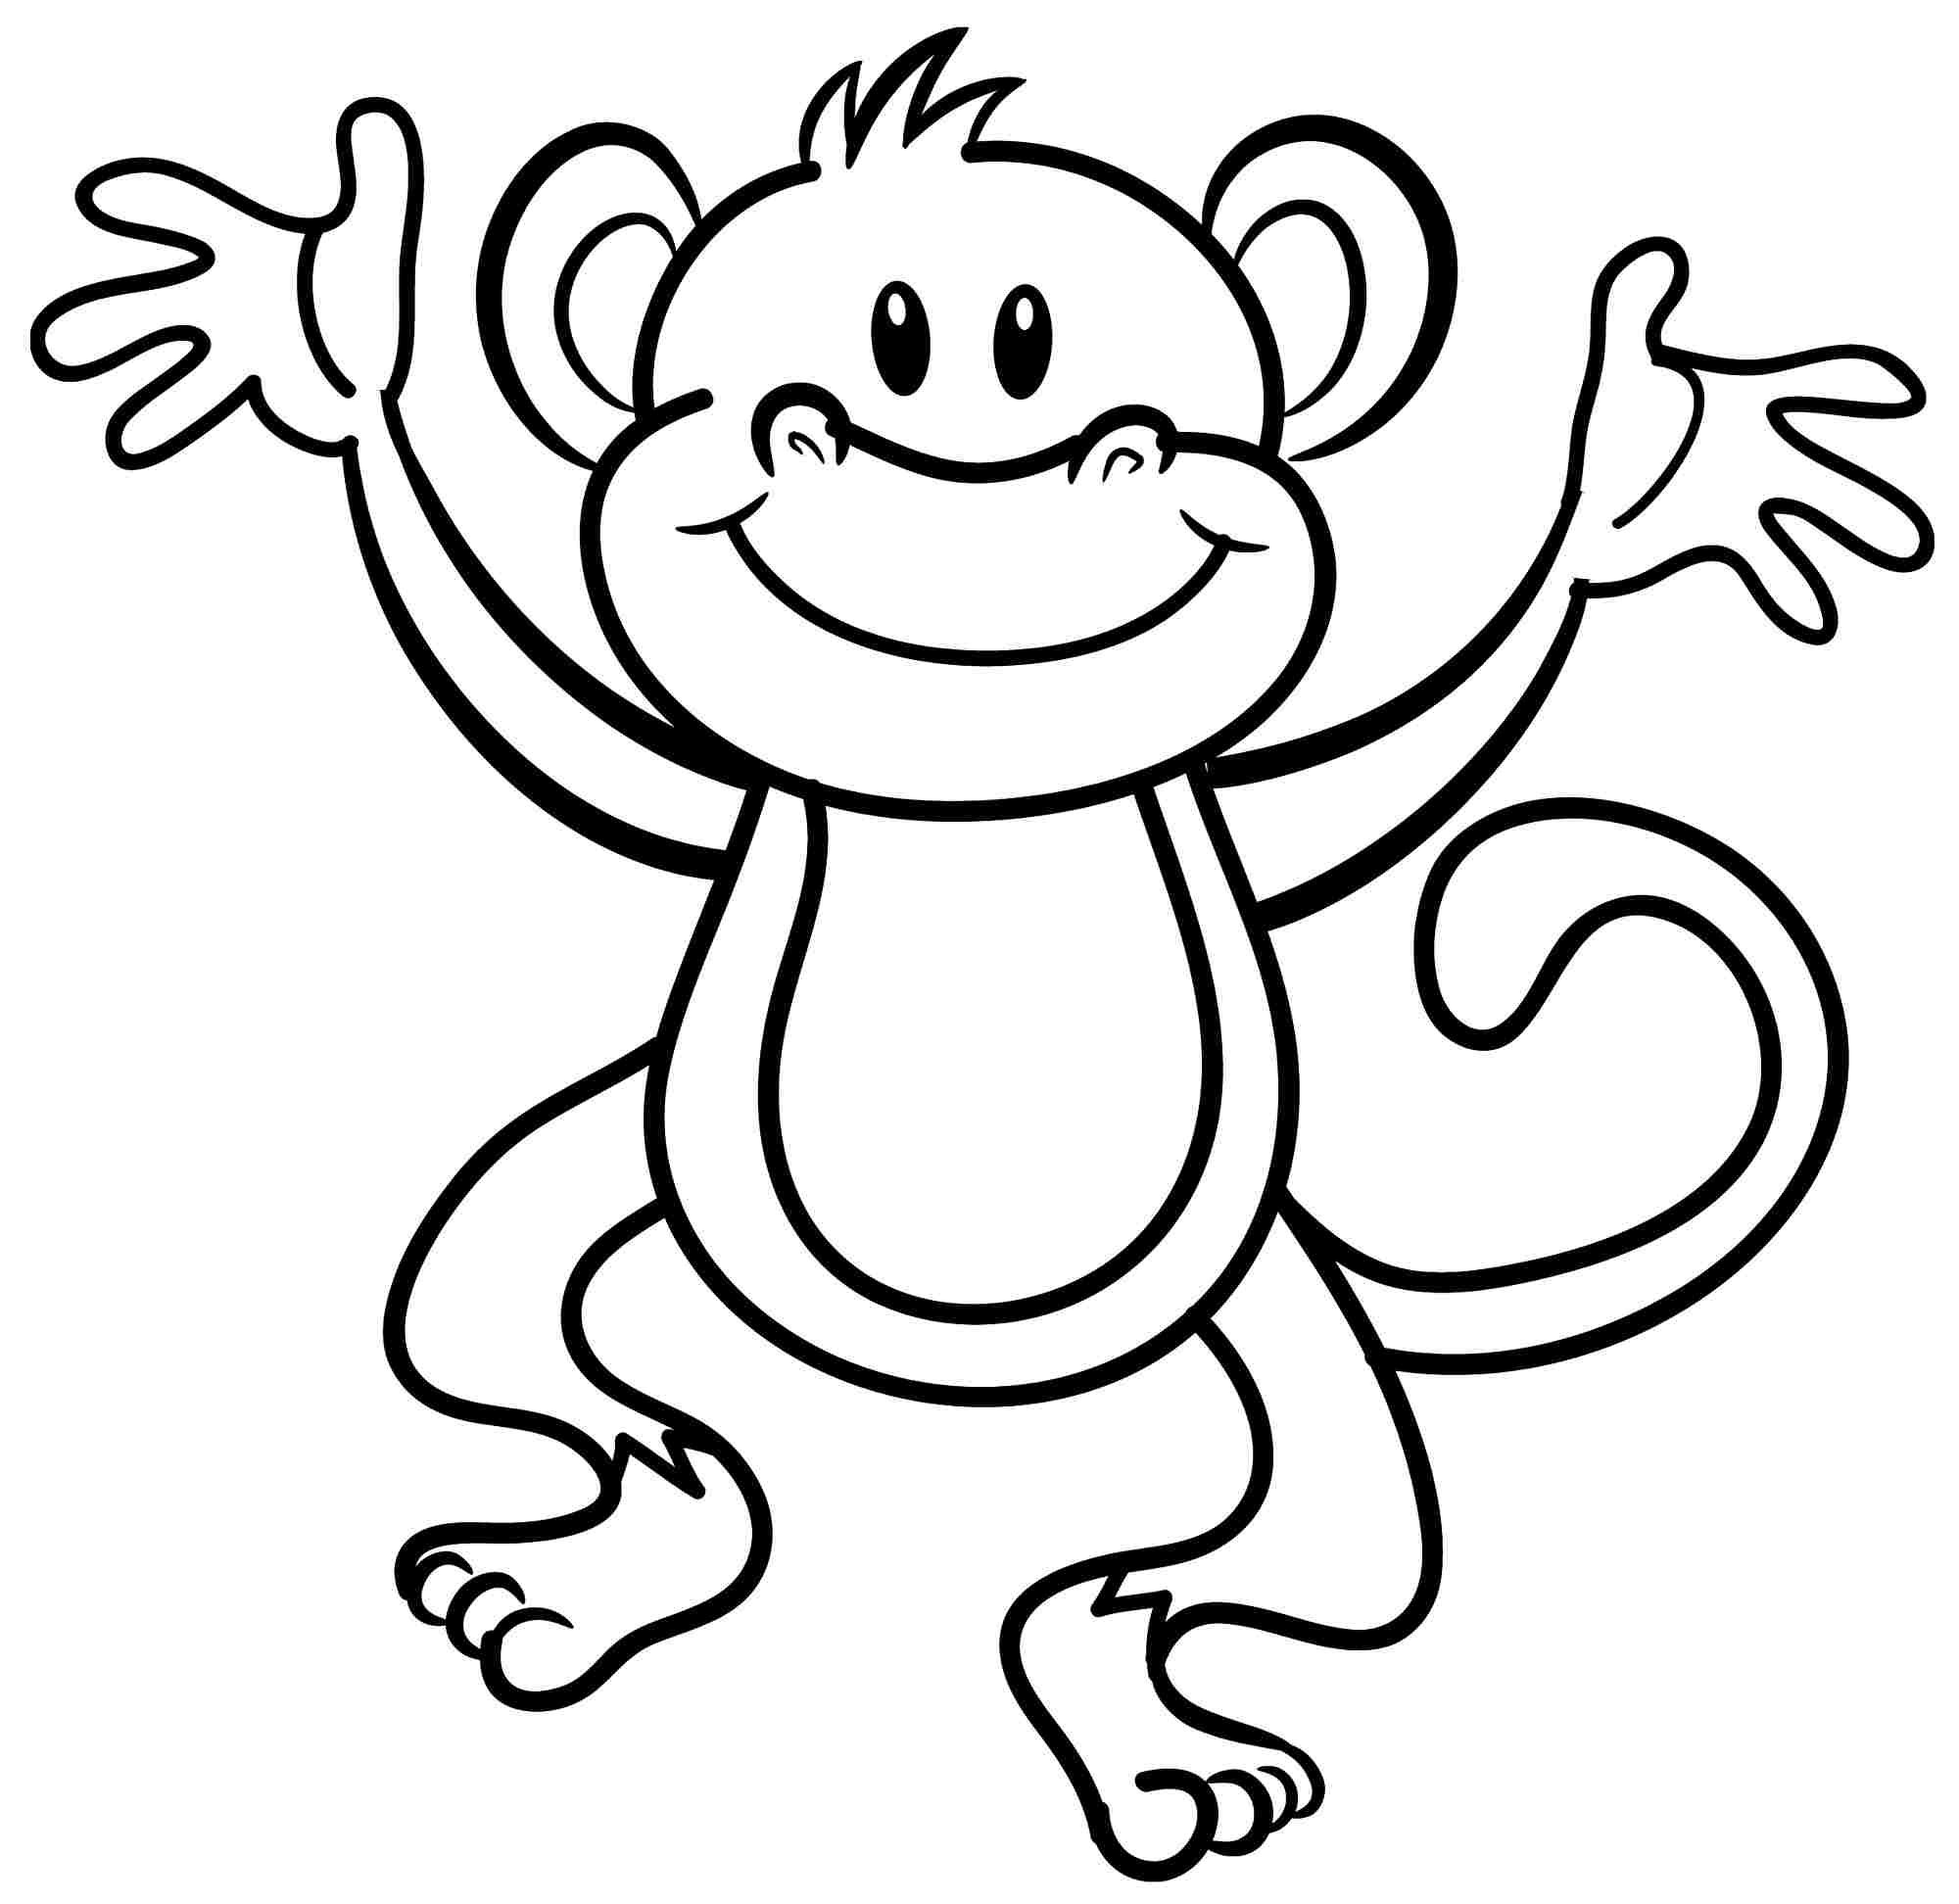 Cute Monkey Preschool Coloring Pages Coloring Rocks In 2020